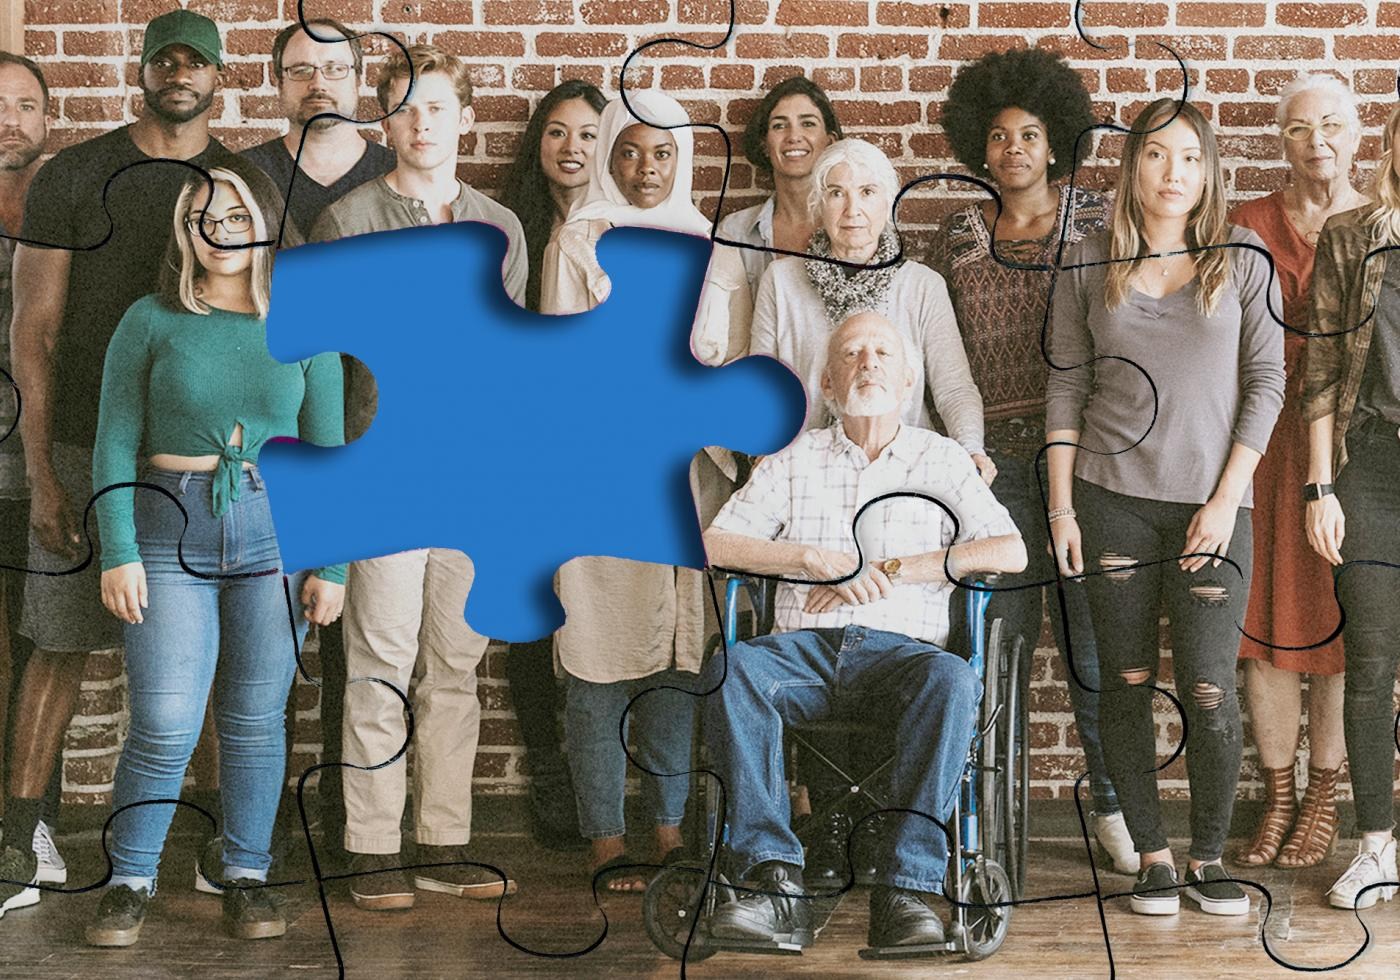 Jigsaw of diverse group of people